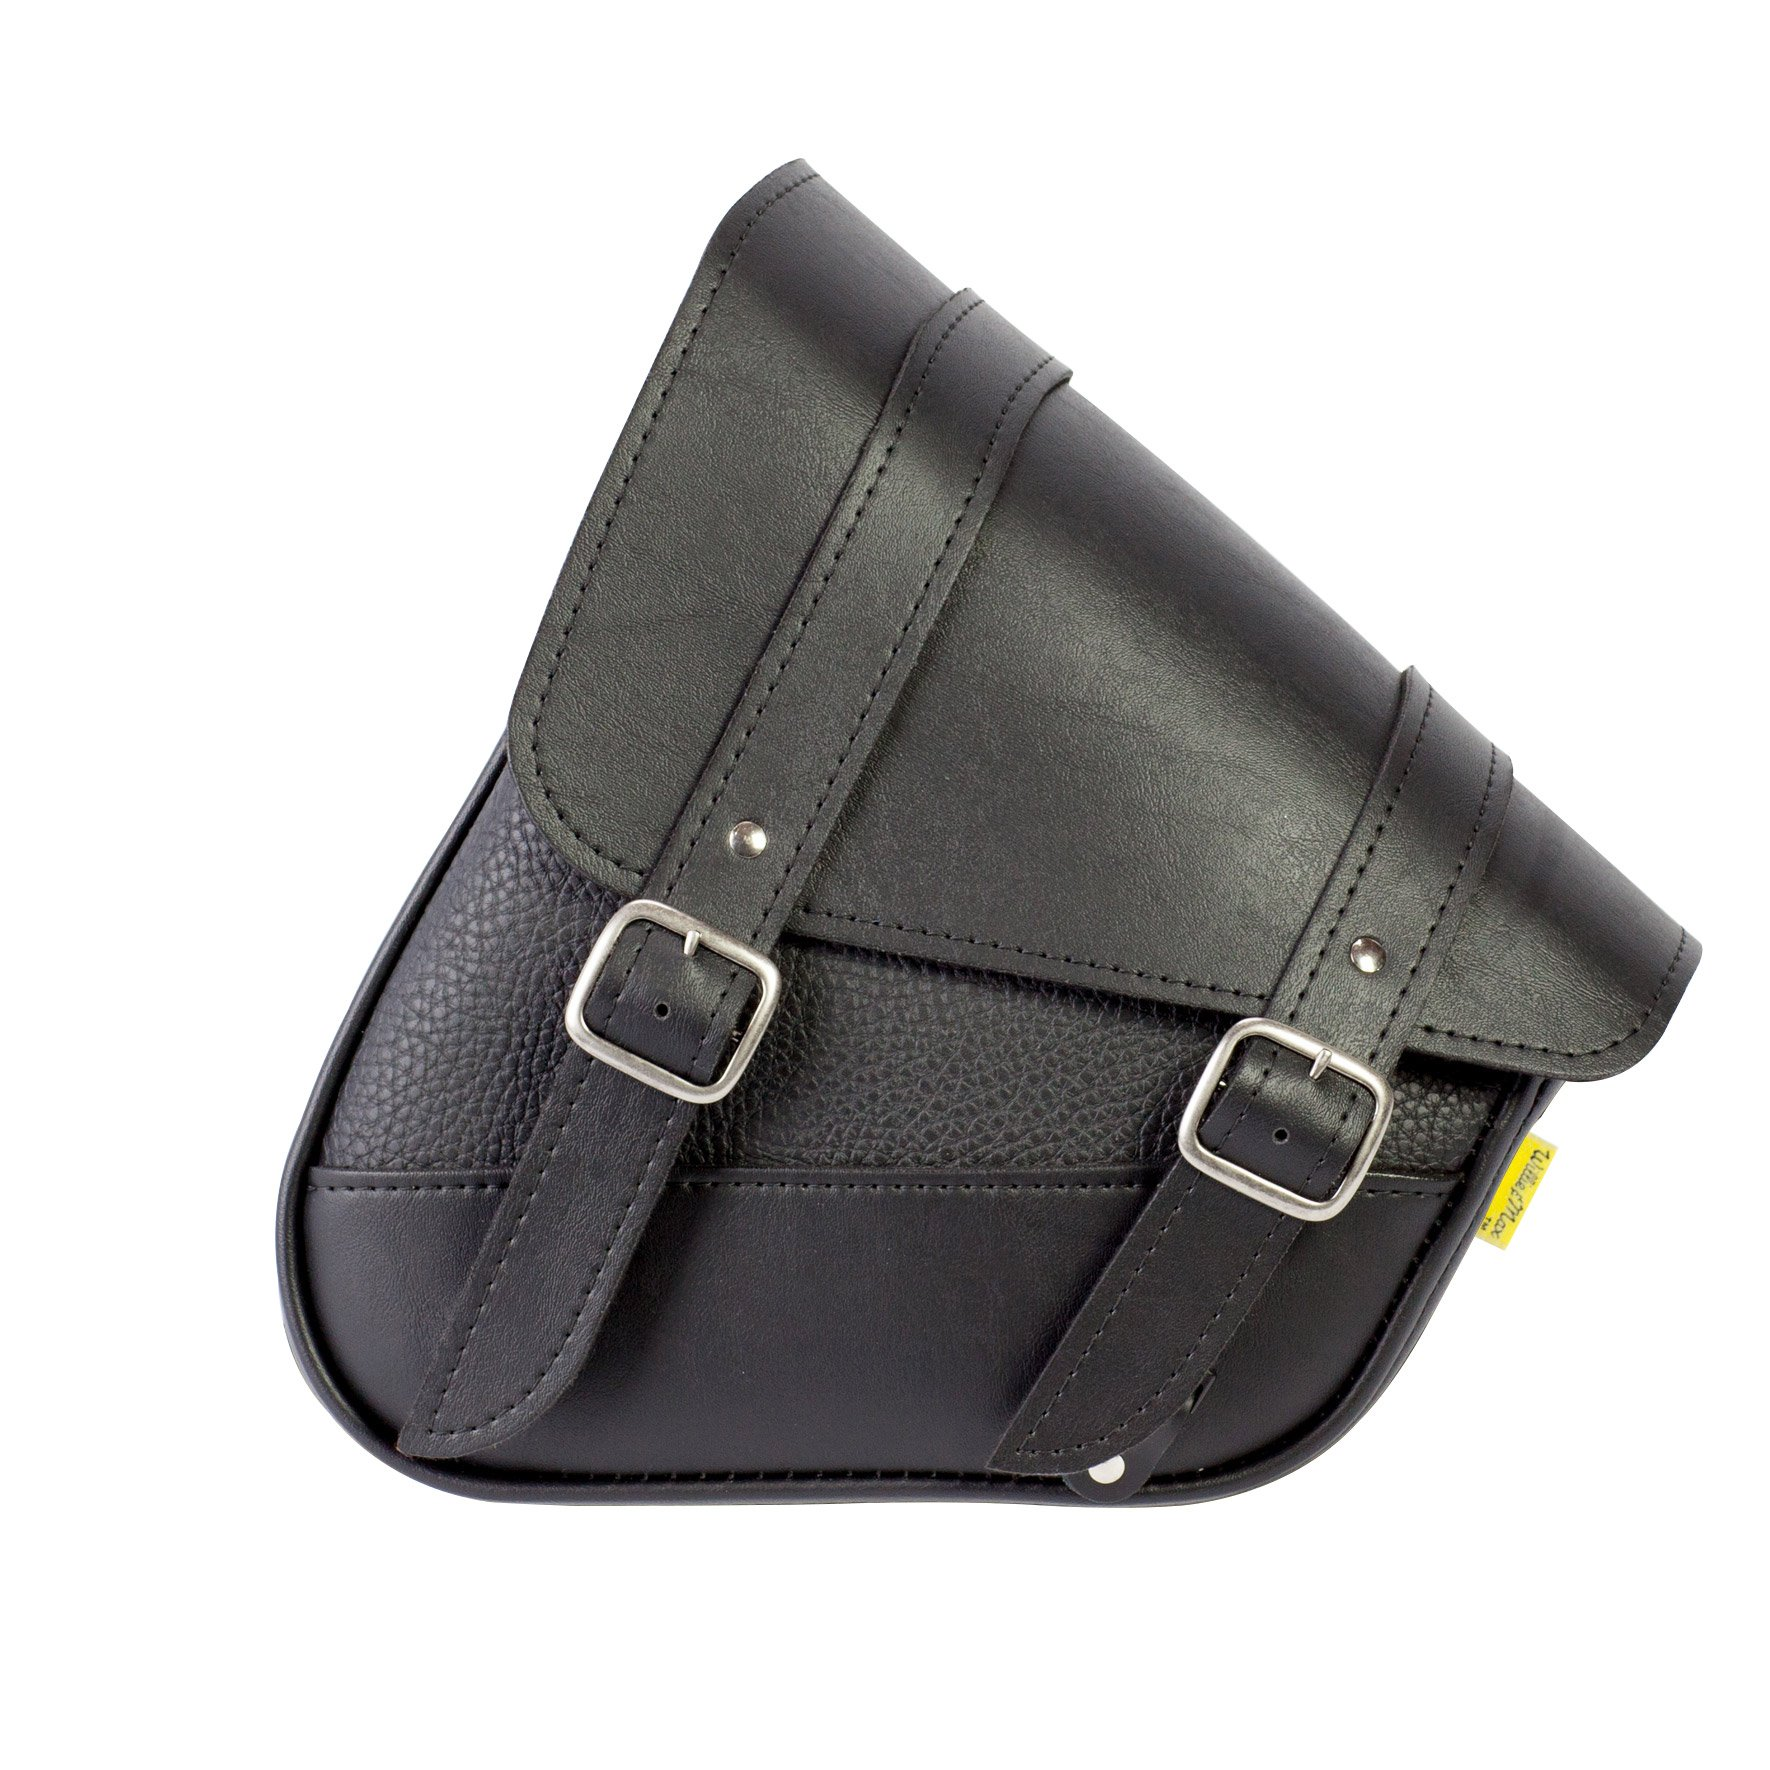 Willie & Max by Dowco 59776-00 Triangulated Synthetic Leather Motorcycle Swingarm Bag: Black, 9 Liter Capacity